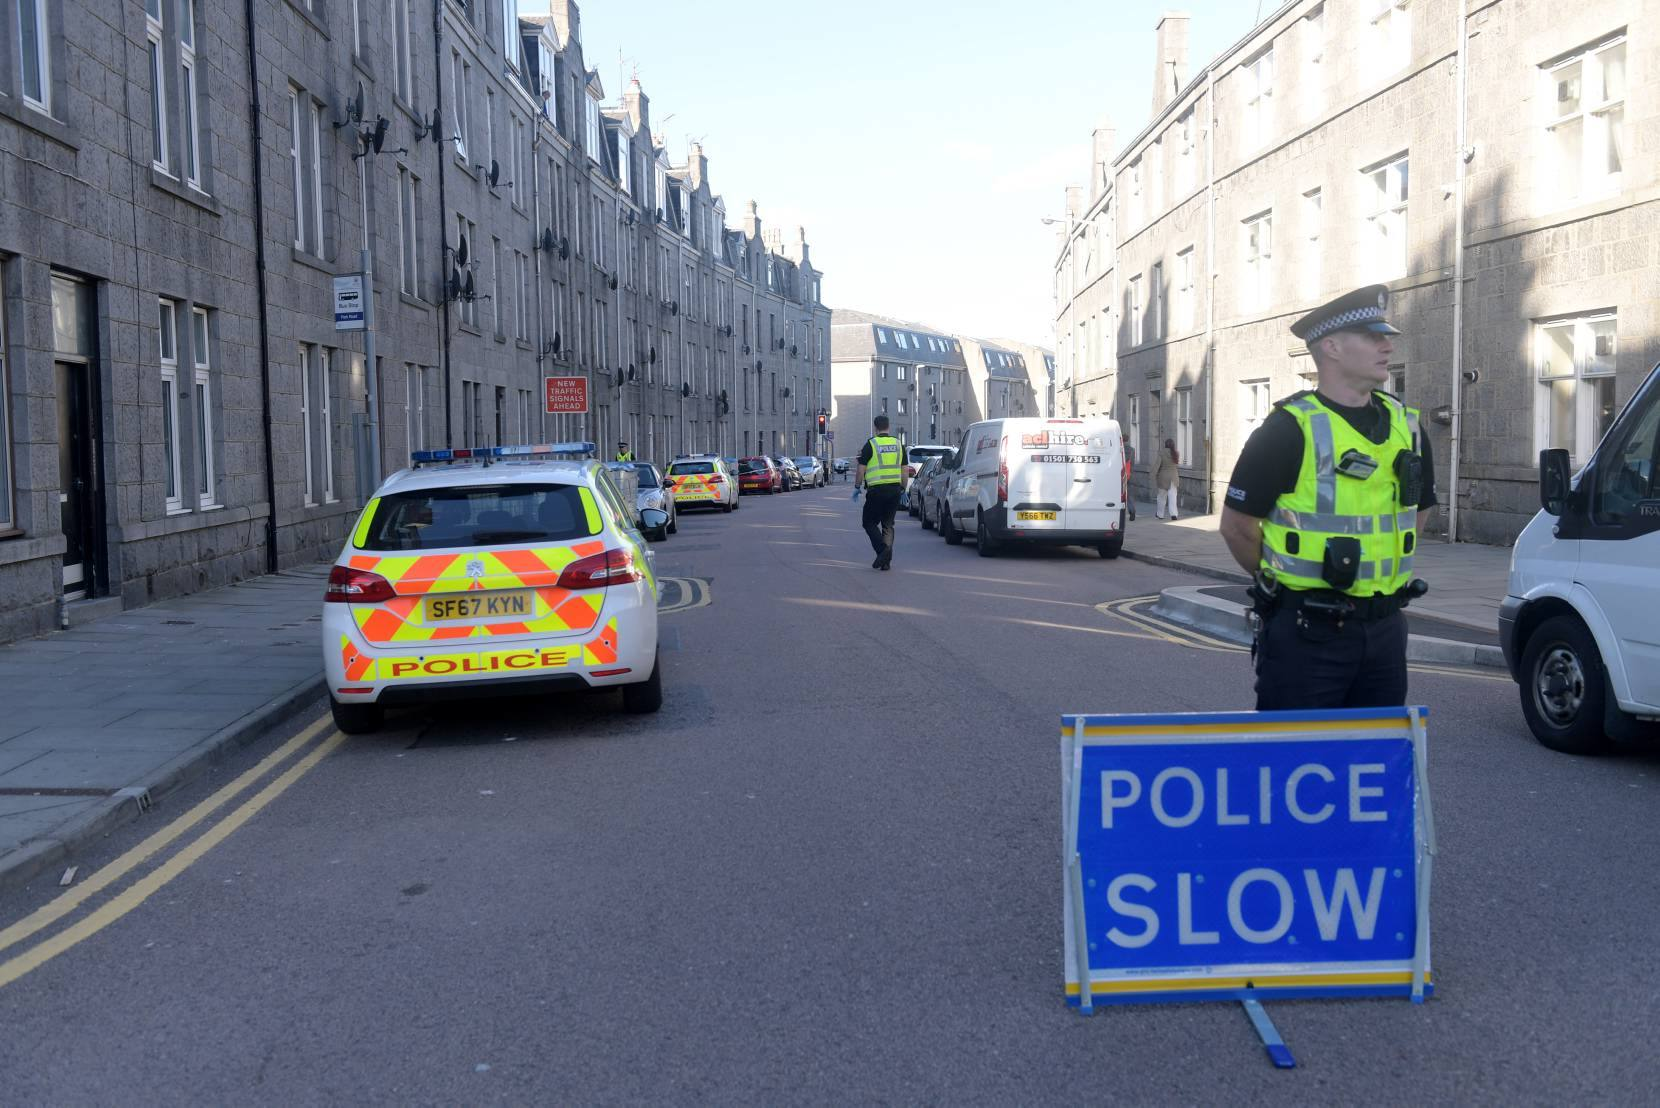 Police at the scene on Urquhart Road, Aberdeen, tonight